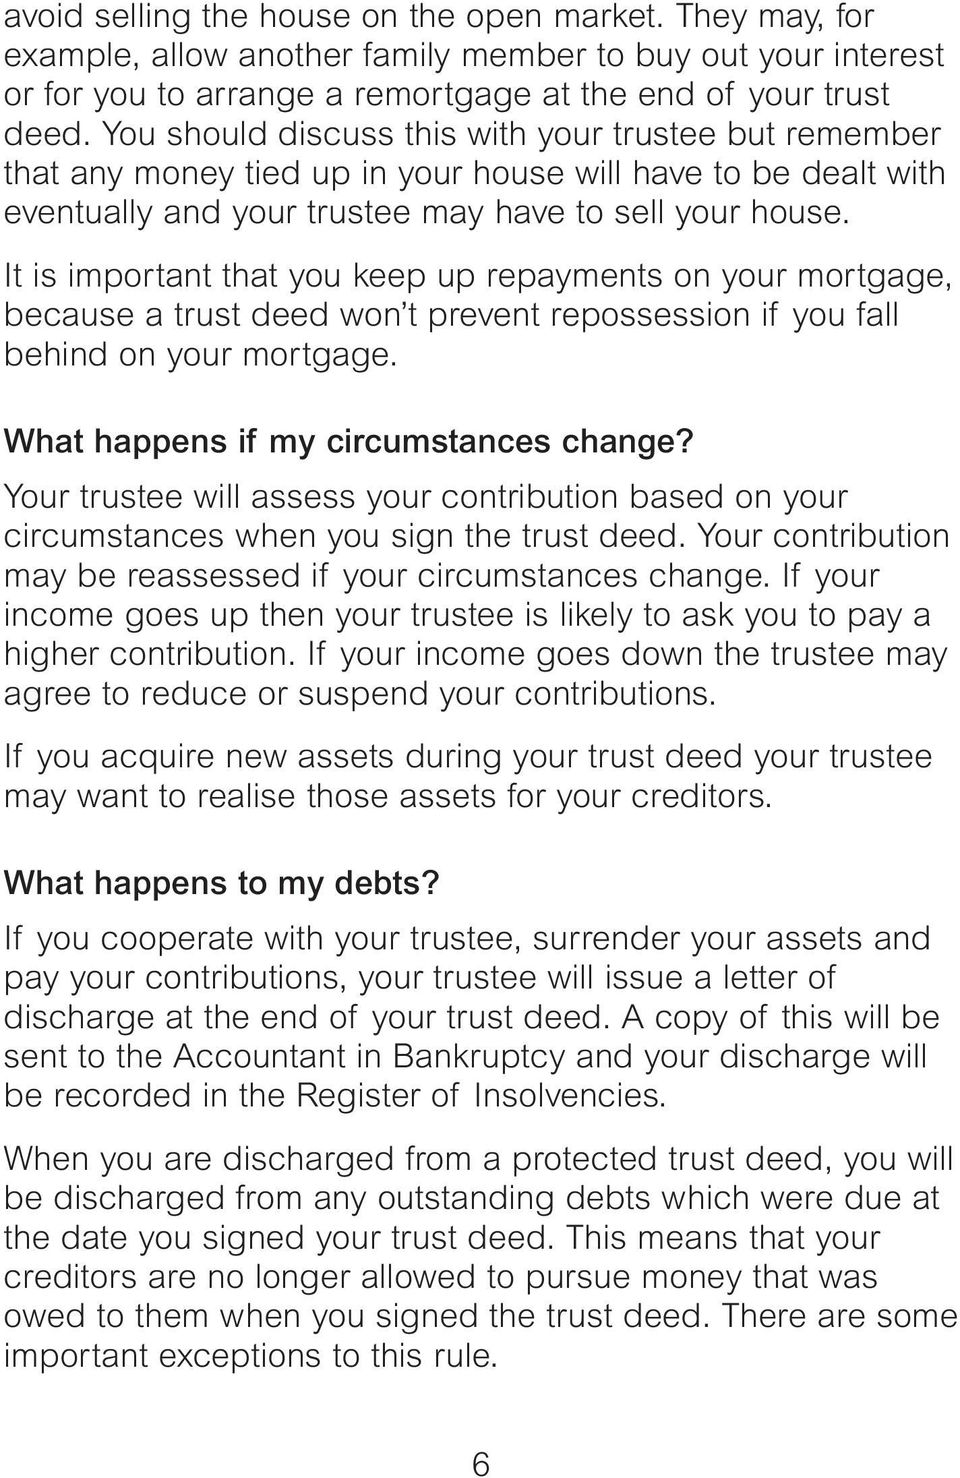 It is important that you keep up repayments on your mortgage, because a trust deed won t prevent repossession if you fall behind on your mortgage. What happens if my circumstances change?